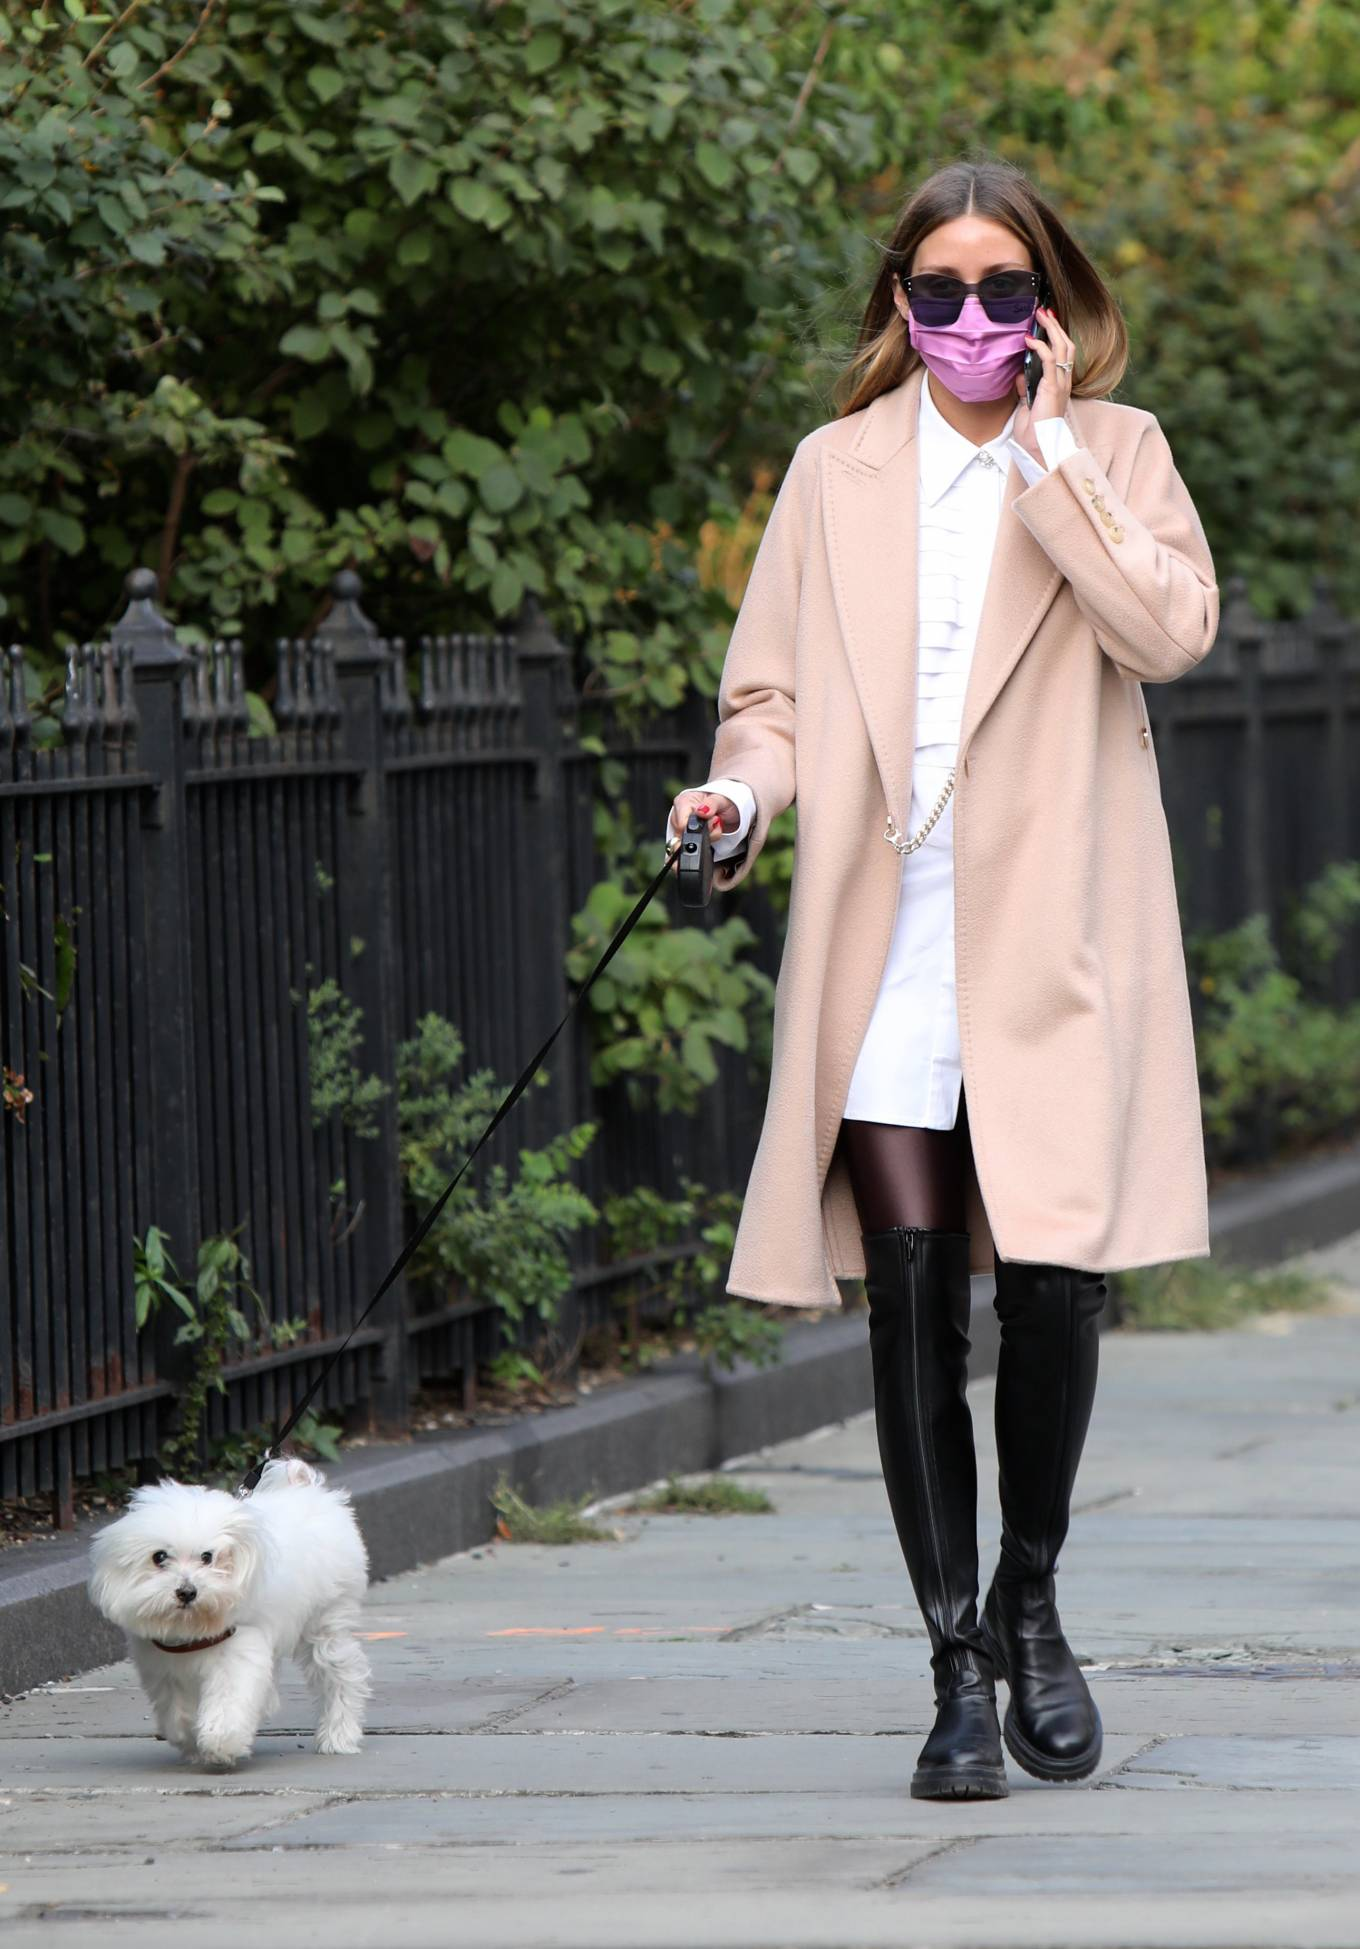 Olivia Palermo 2020 : Olivia Palermo – Wearing a white short dress under a coat while out for a walk in Manhattan-04